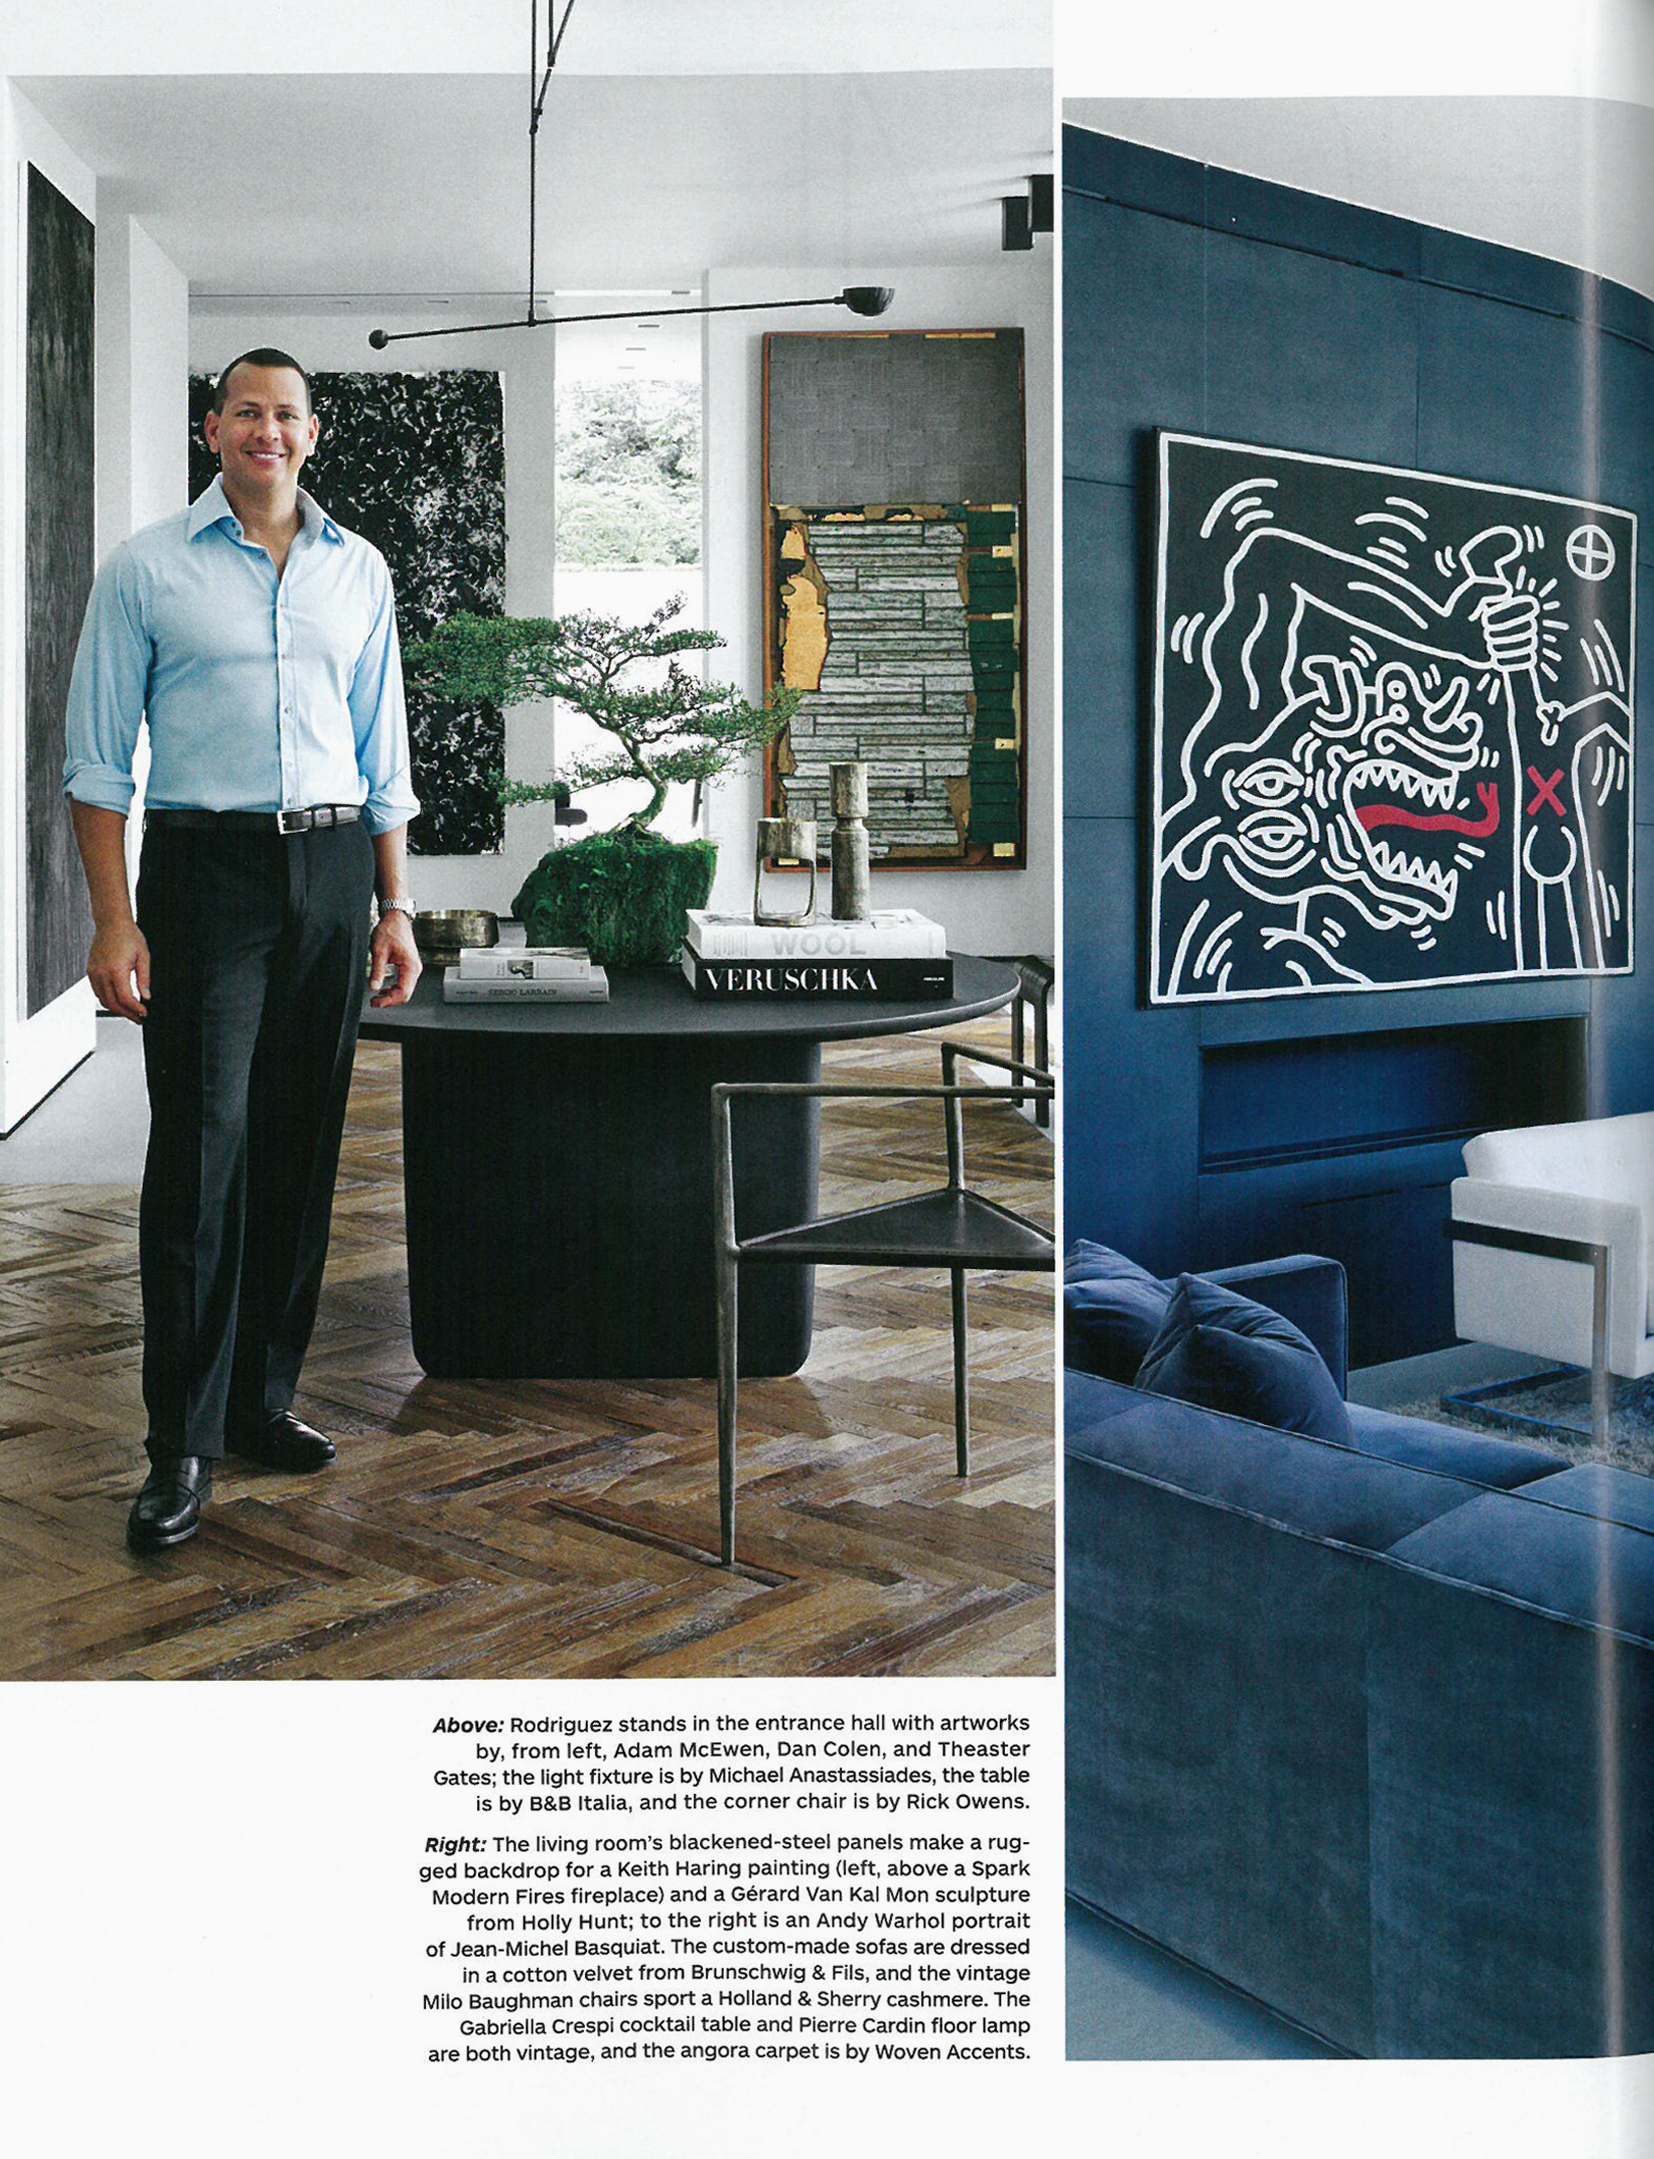 Architectural Digest article featuring the Tobi-Ishi Table from B&B Italia